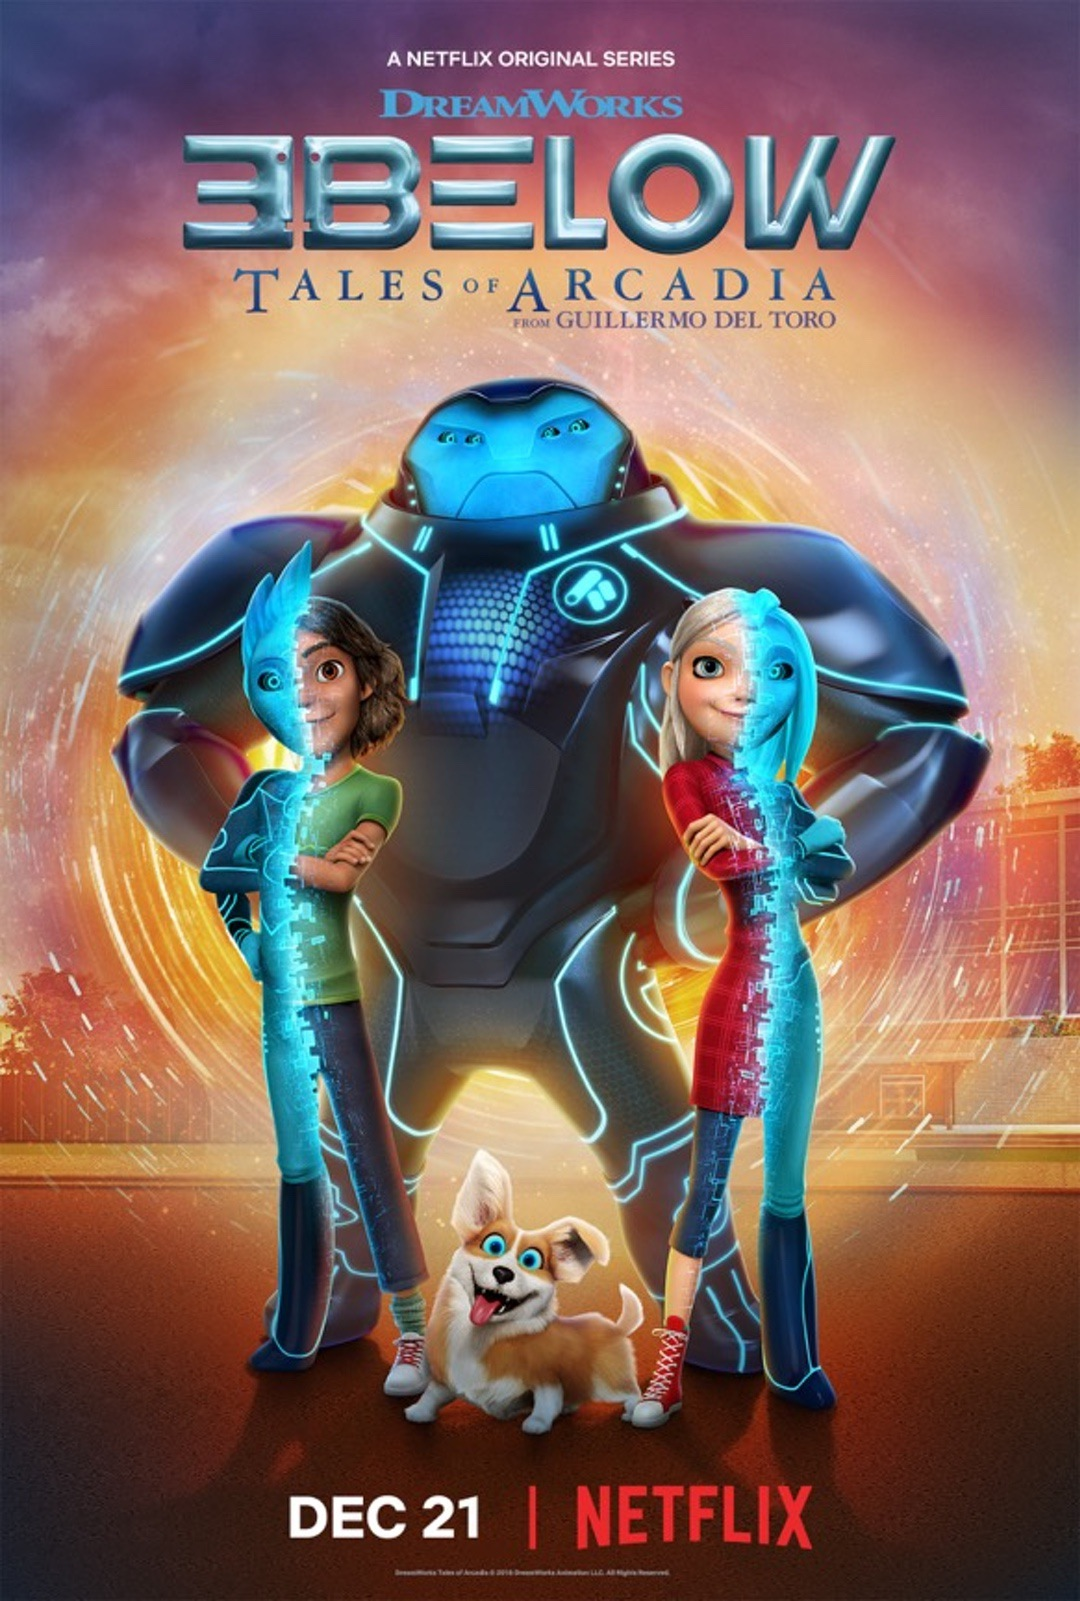 3Below: Tales of Arcadia Season 1 #DWA #3Below #Netflix #ad